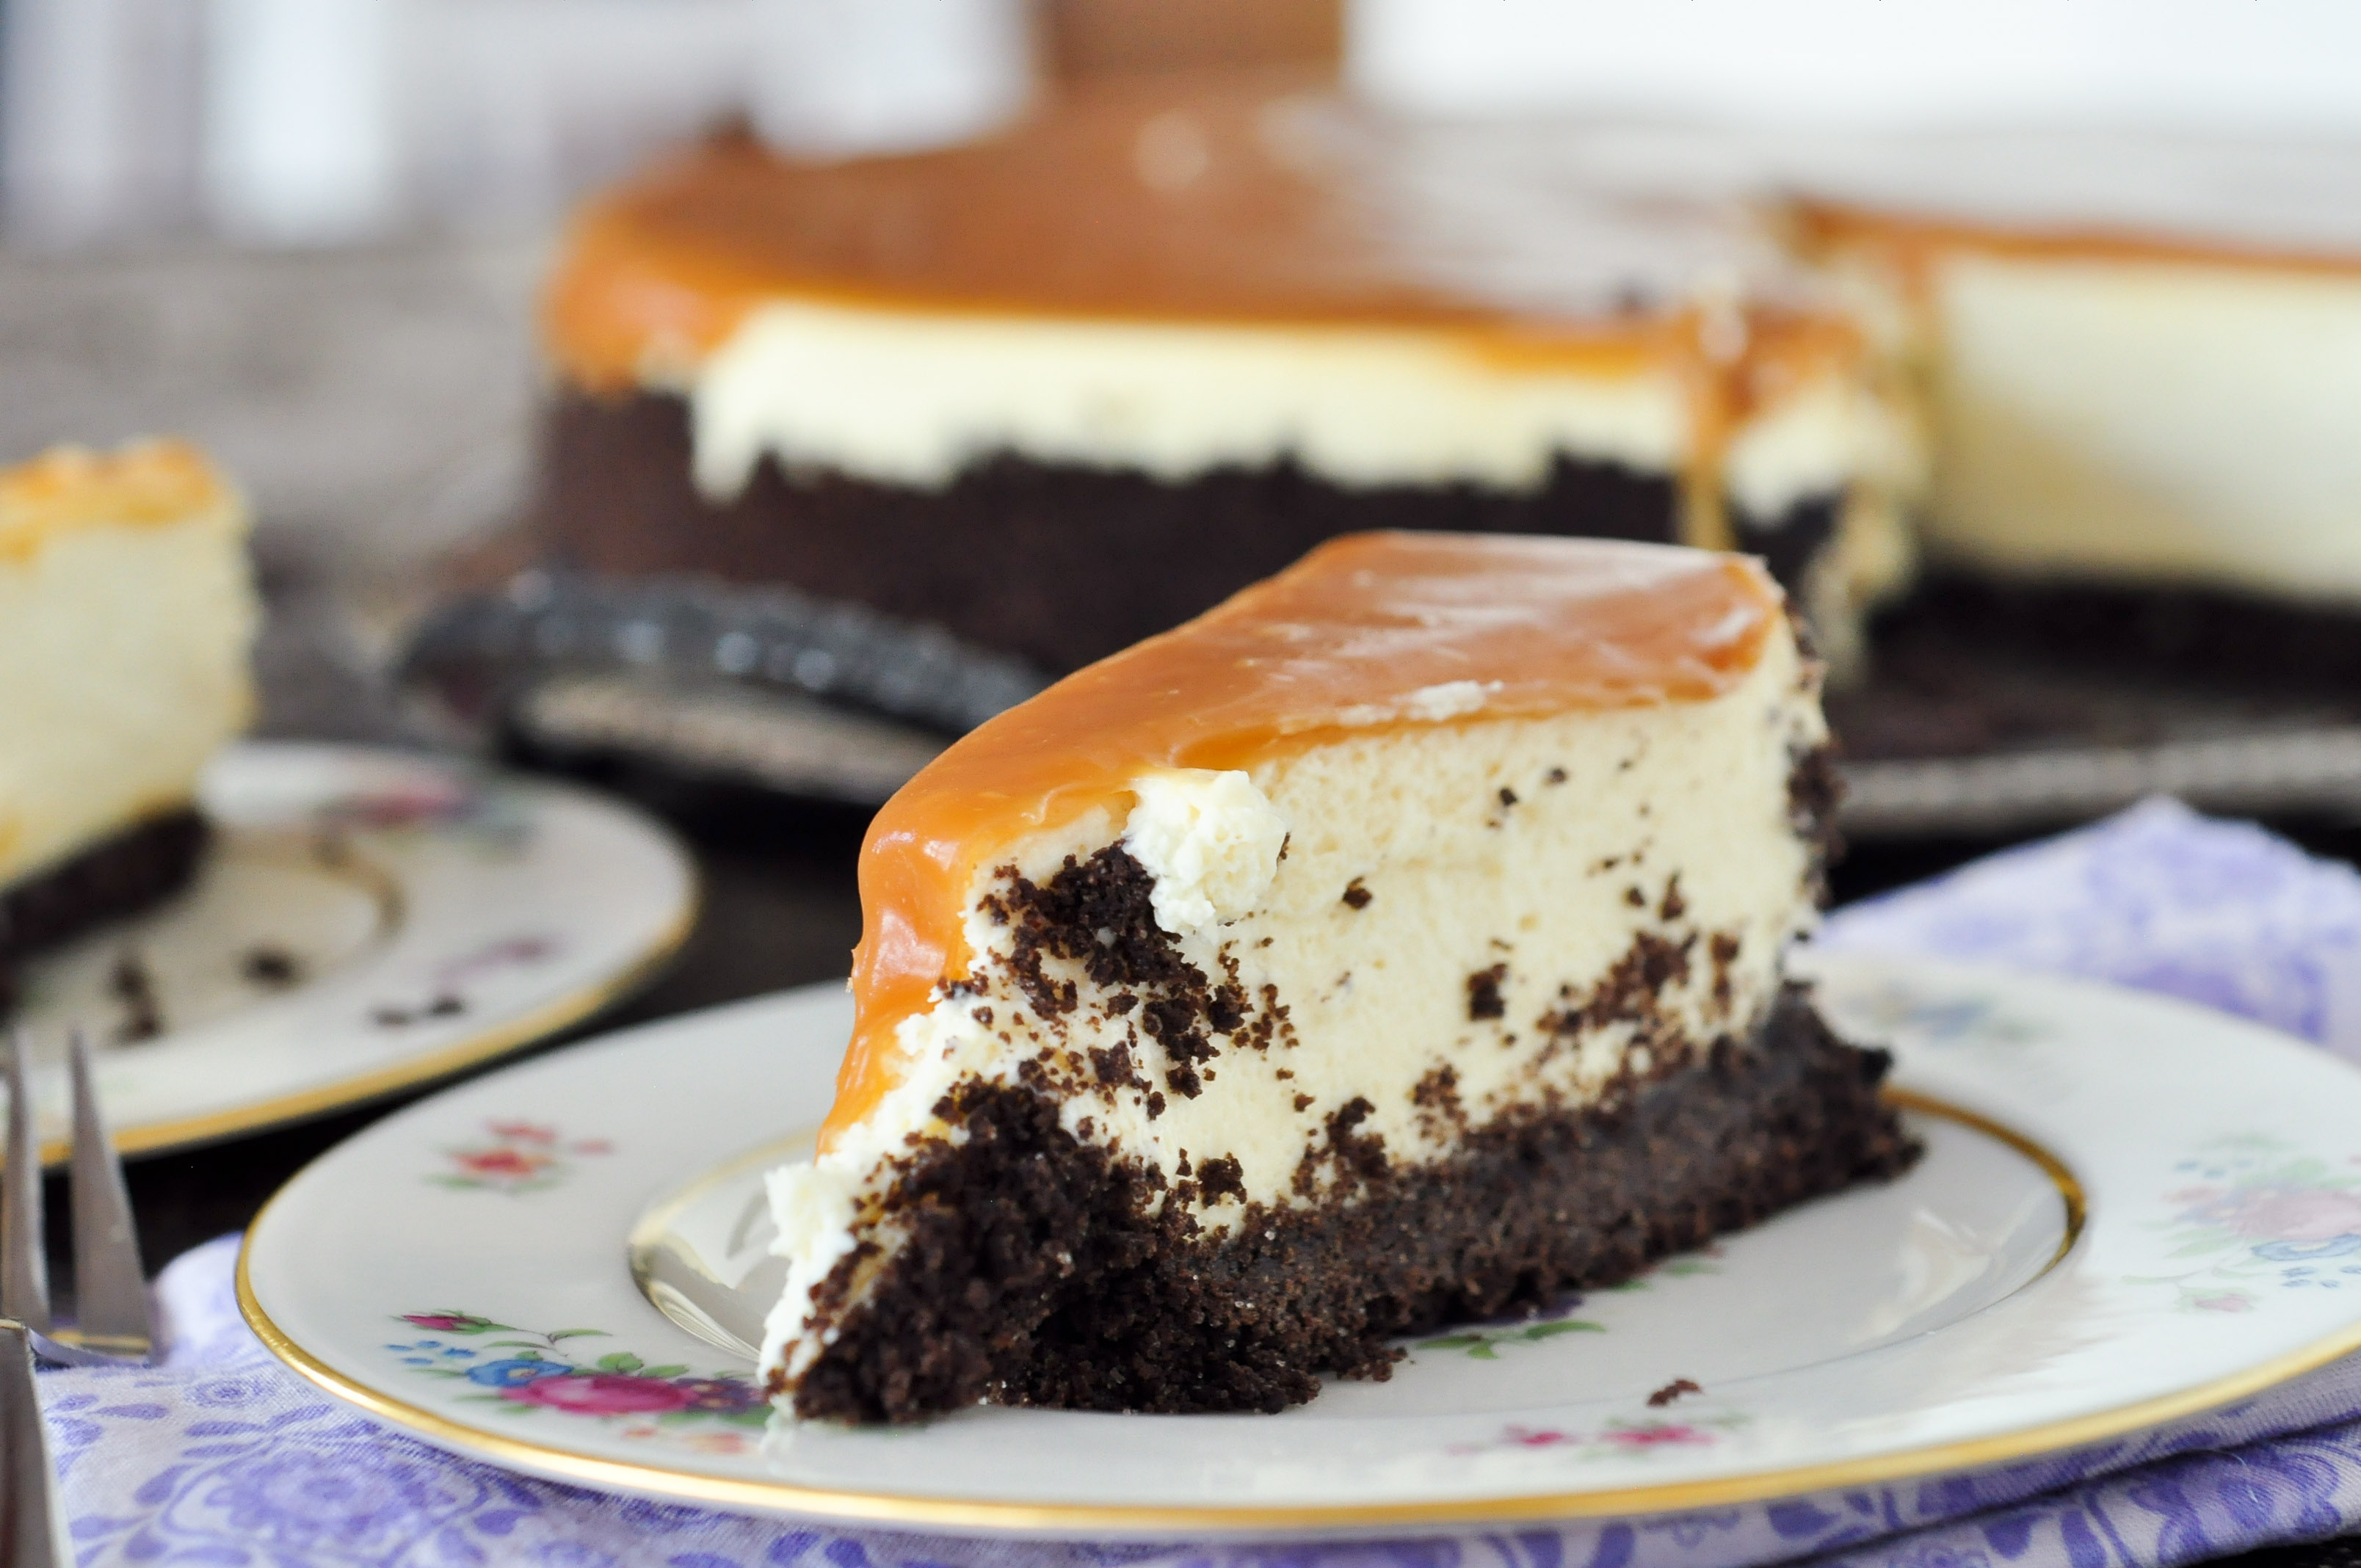 Irish Cream Caramel Cheesecake